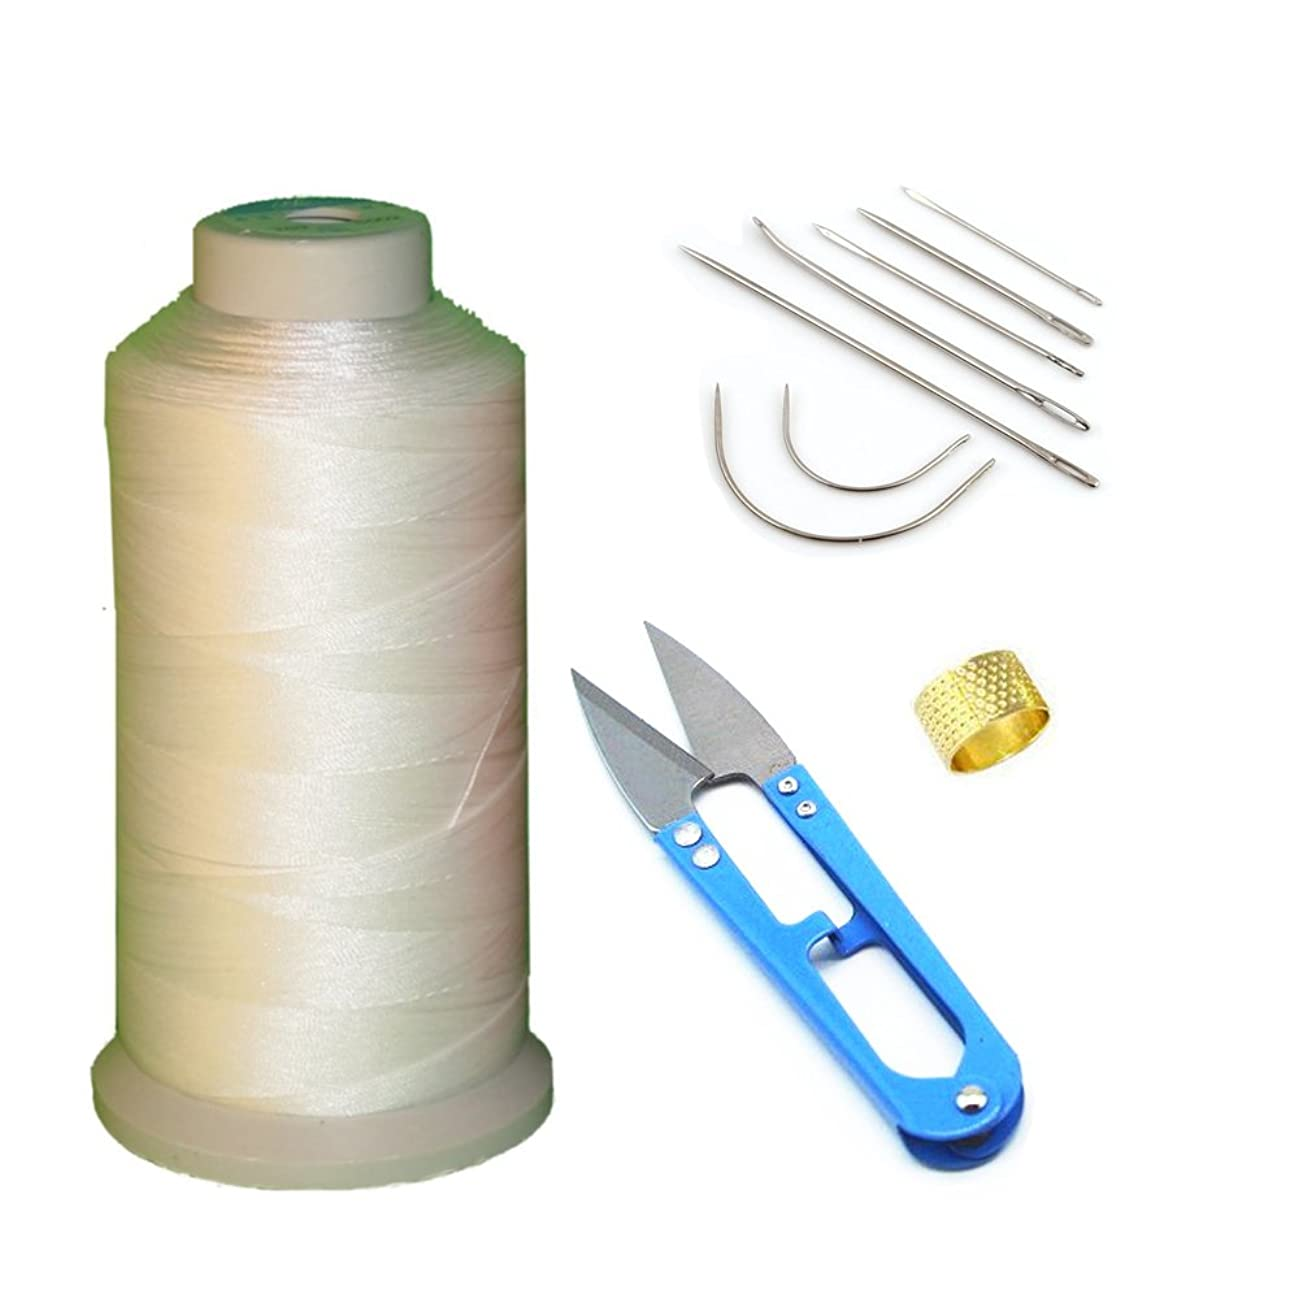 AntKits Bonded Nylon Sewing Thread, Curved Needles, Scissors and Thimble Tools Kits (White)